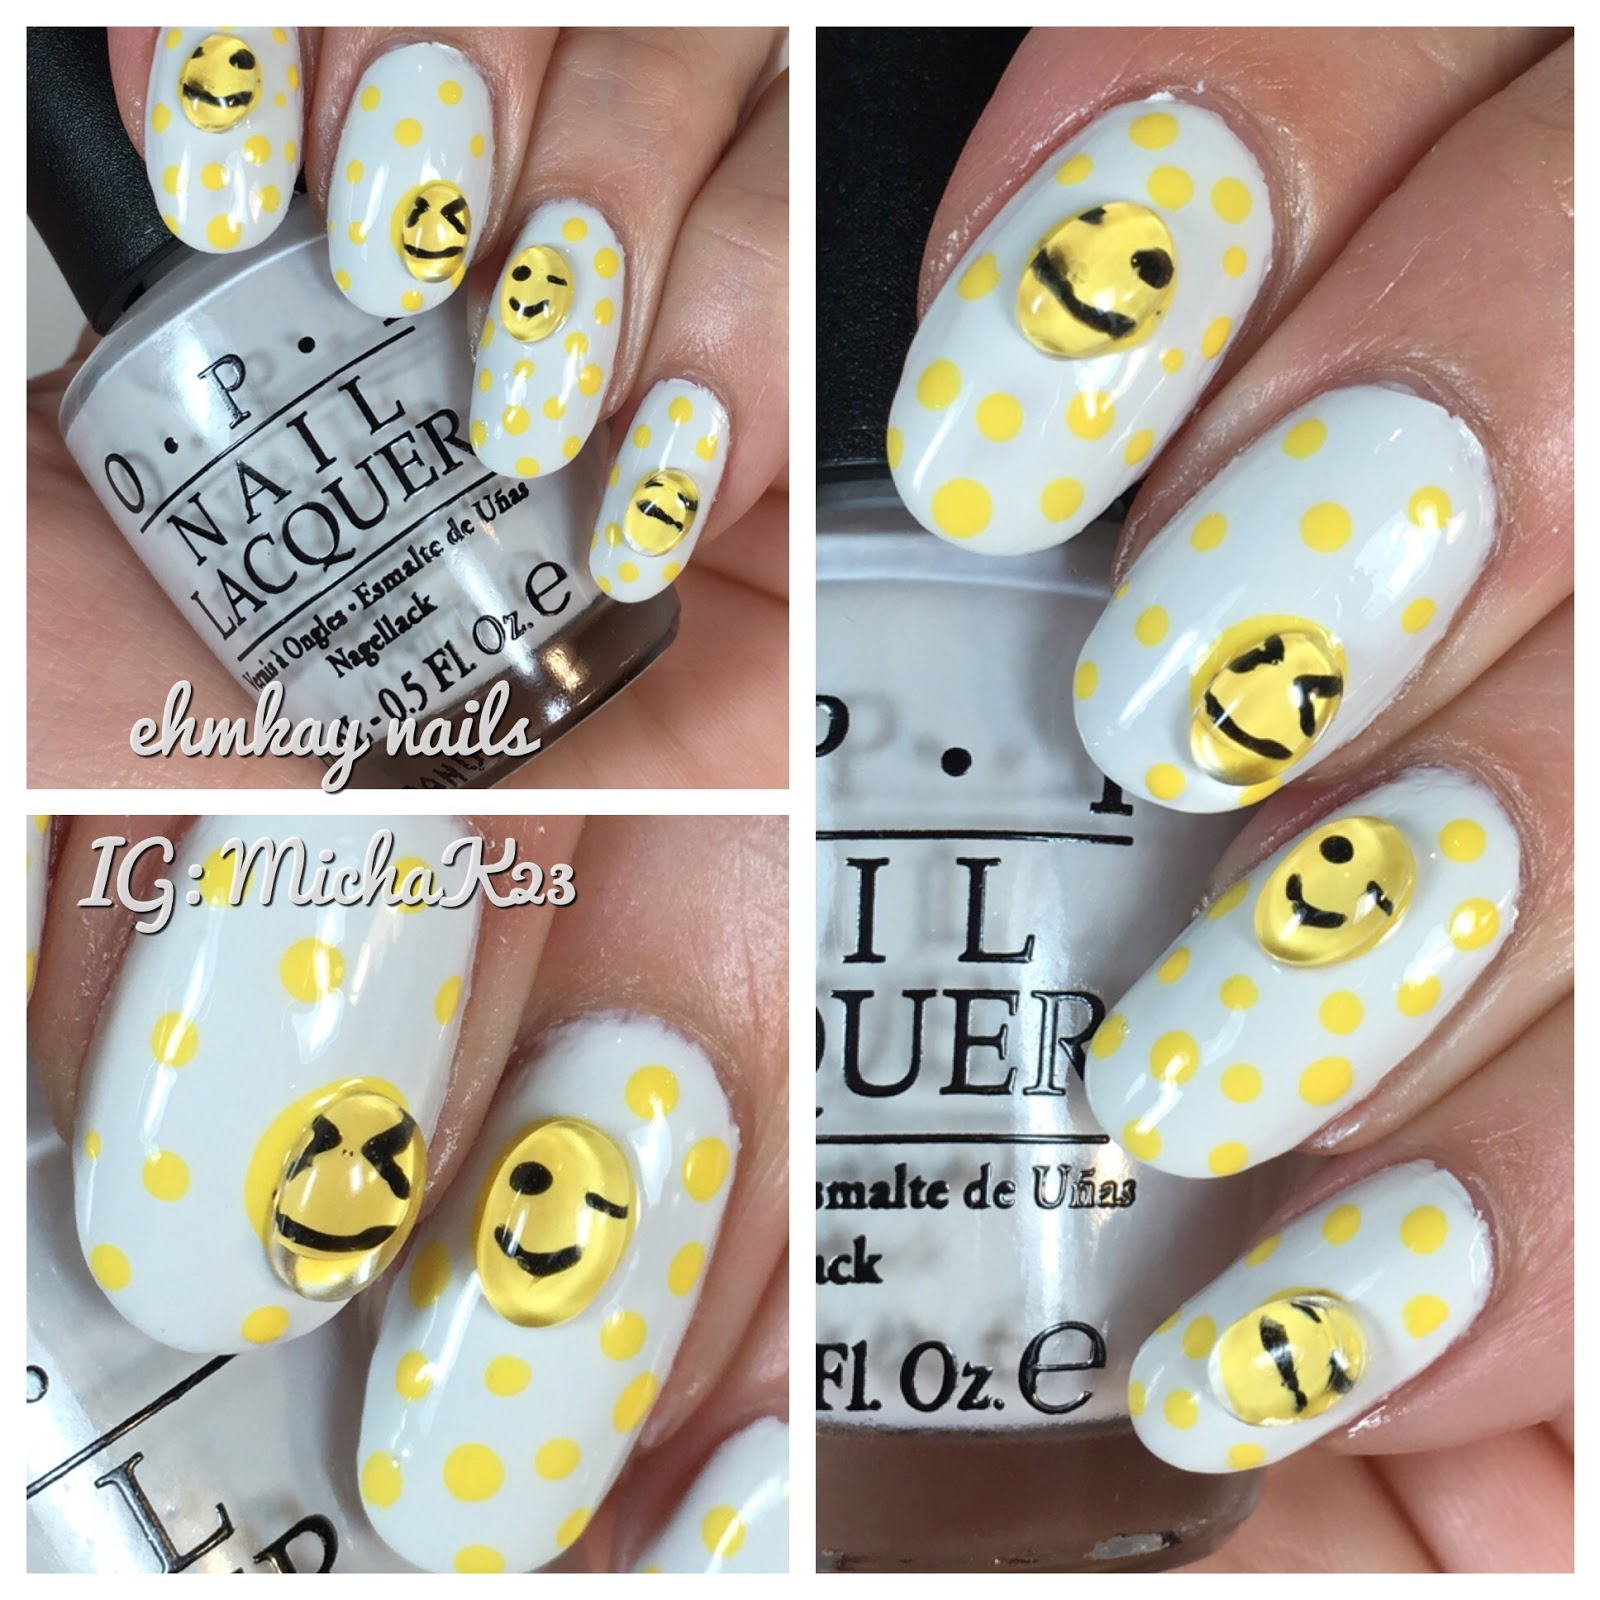 Ehmkay Nails Magnifying Bubble Studs From Born Pretty With Emoticon